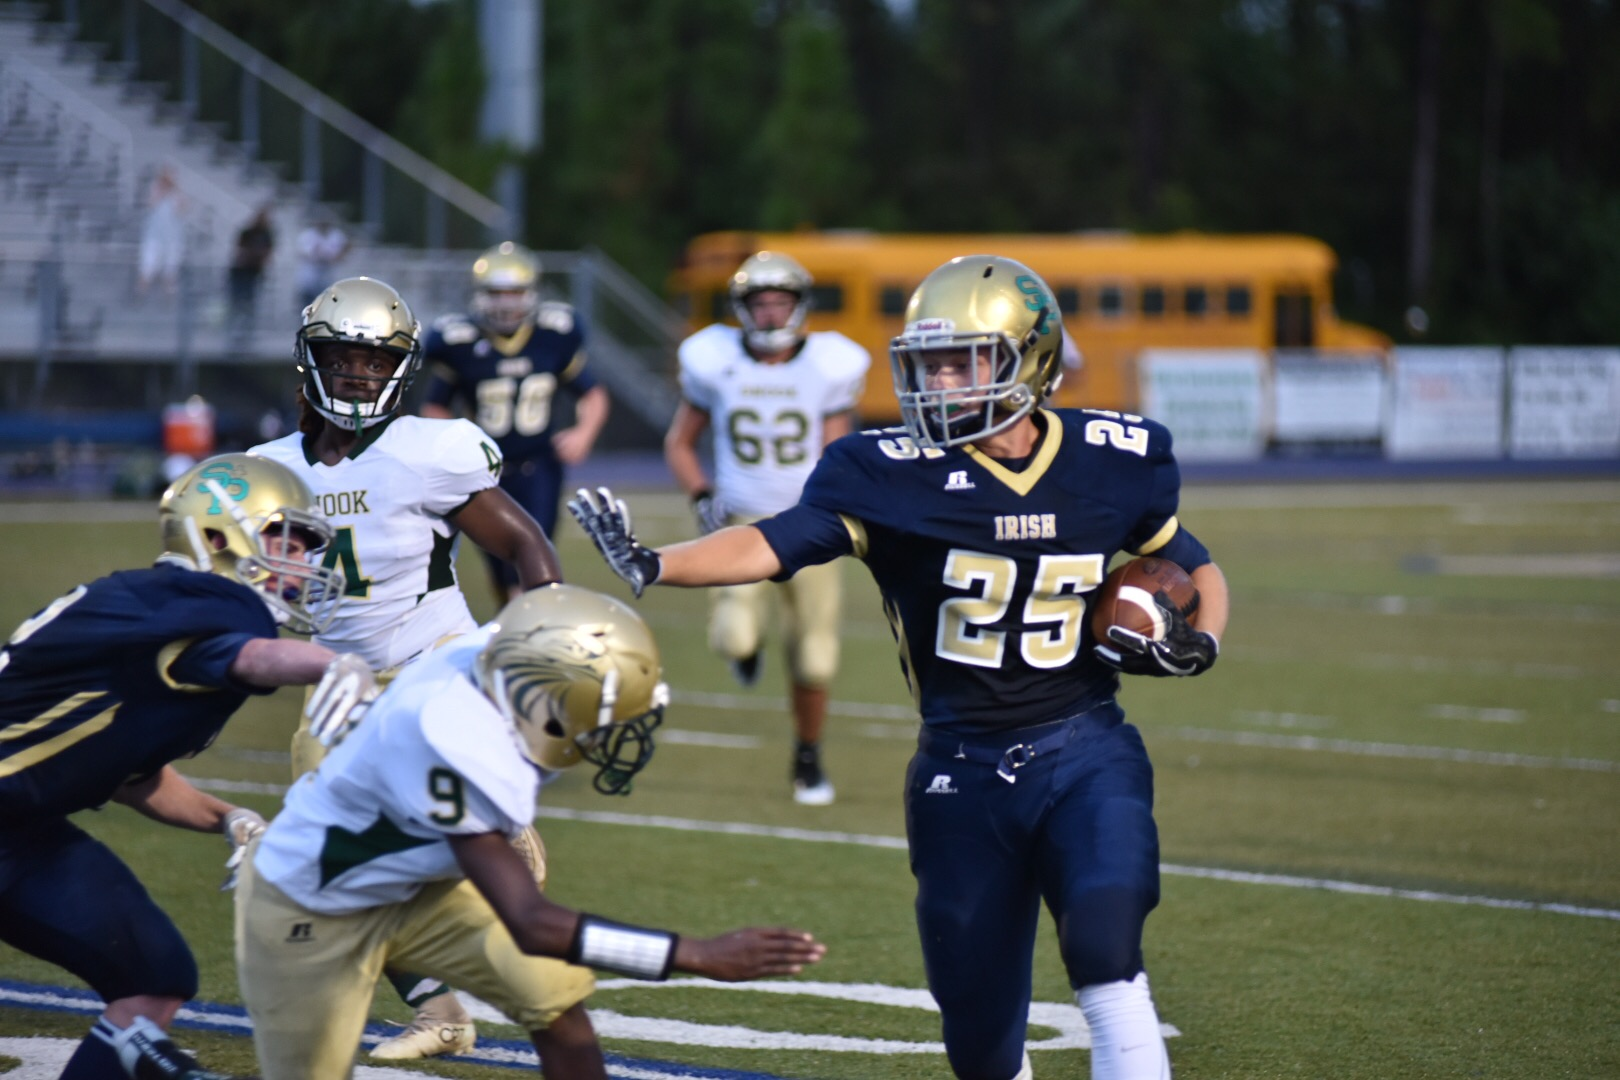 Fighting Irish Football Team shuts out Snook Academy 40-0 in first home game of 2018 season